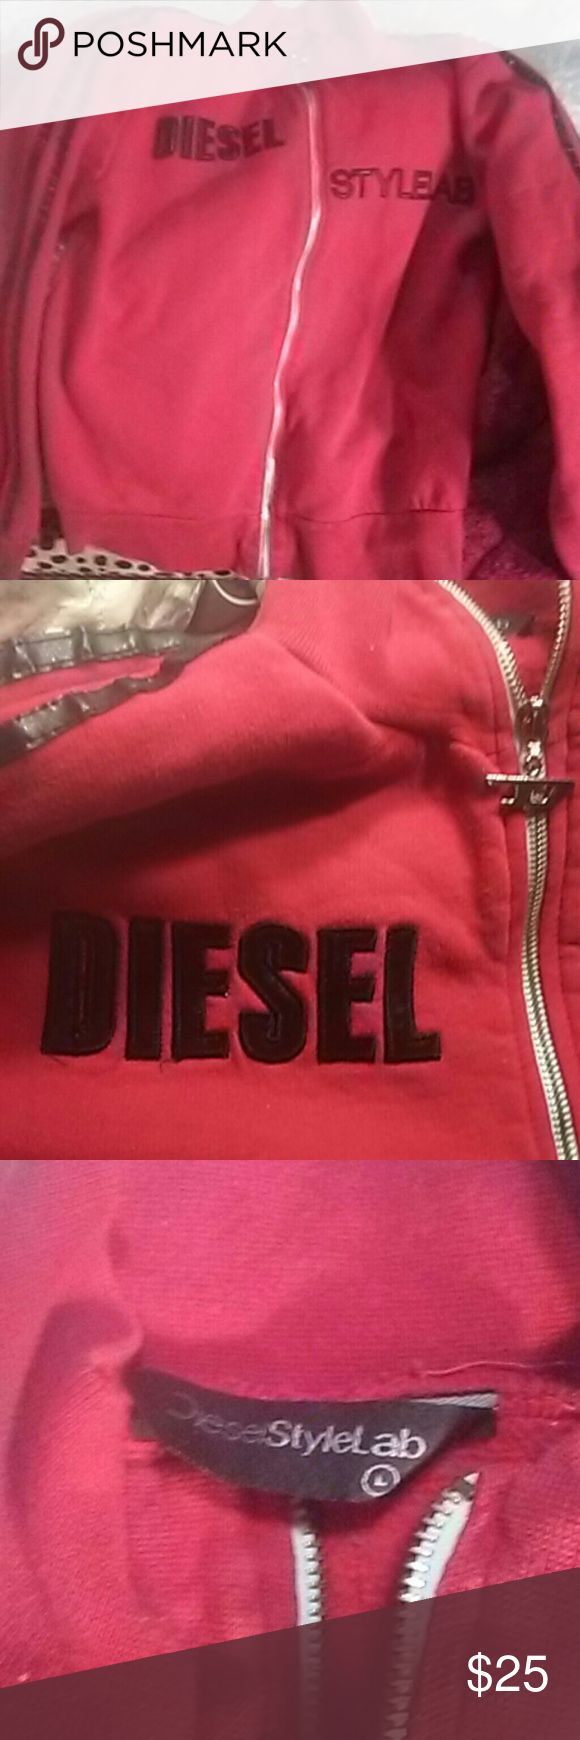 Diesel Style Lab This is an awesome cherry red with like a leather-look down the sides of the arms and on the side of the shoulders all the way down and then the diesel Style Lab in the front as in leather look too the way that it's printed 100% authentic still tagged but ripped out the bottom ones because it was making me itchy very loved but time to Let It Go price is firm great deal Diesel Tops Sweatshirts & Hoodies